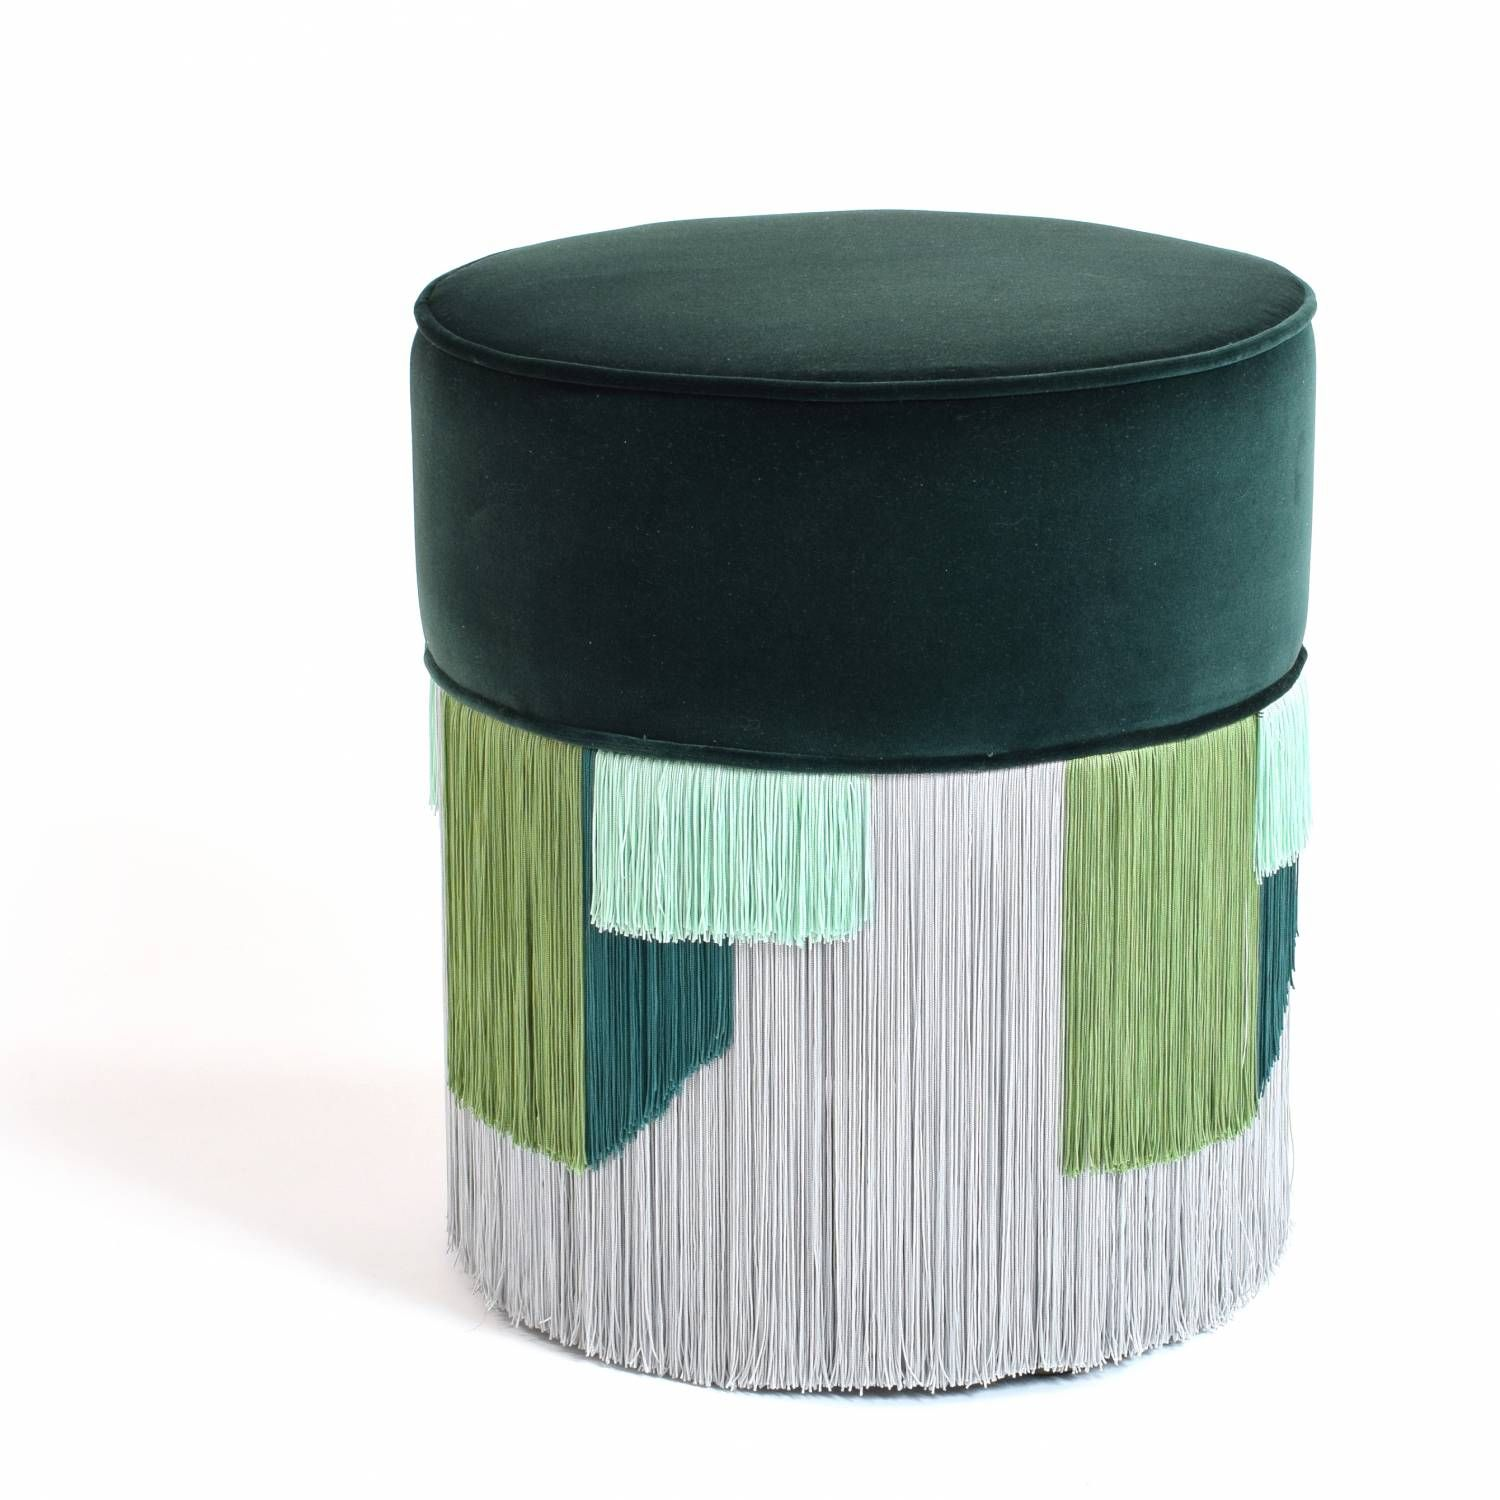 Couture pouf collection by Lorenza Bozzoli | Flodeau.com | Furniture ...